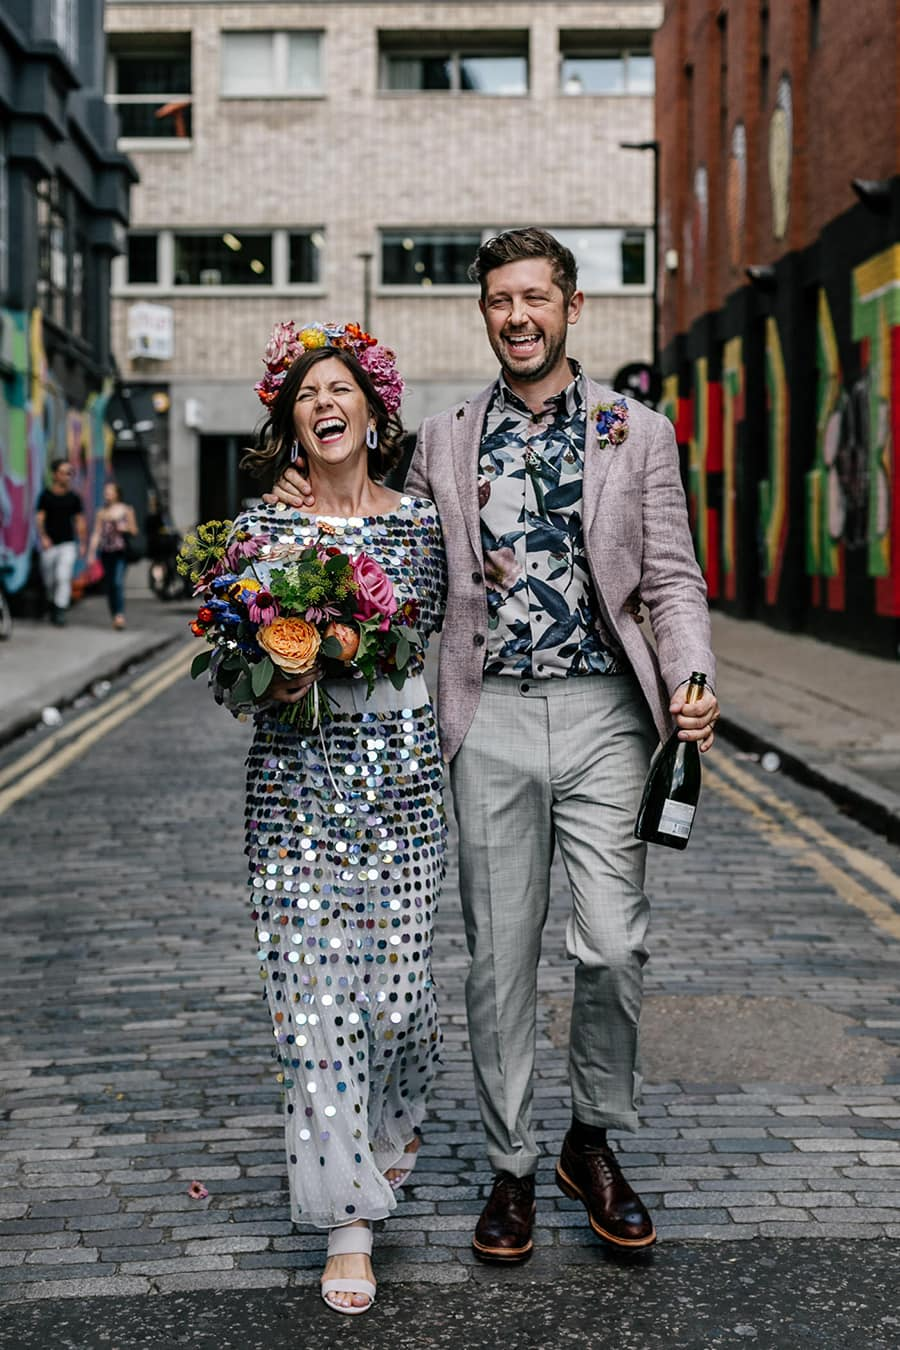 Electric Disco Wedding Ideas |  A bride and groom laugh as they walk down an urban industrial cobbled street with graffic art on the walls. The bride wears a shimmering silver sequin wedding dress. She carries a bright multicolour wedding bouquet and wears a matching flower crown. The groom wears grey pants, muted pink jacket and a tropical print shirt. He carries an open bottle of champagne. | Photography: Epic Love Story